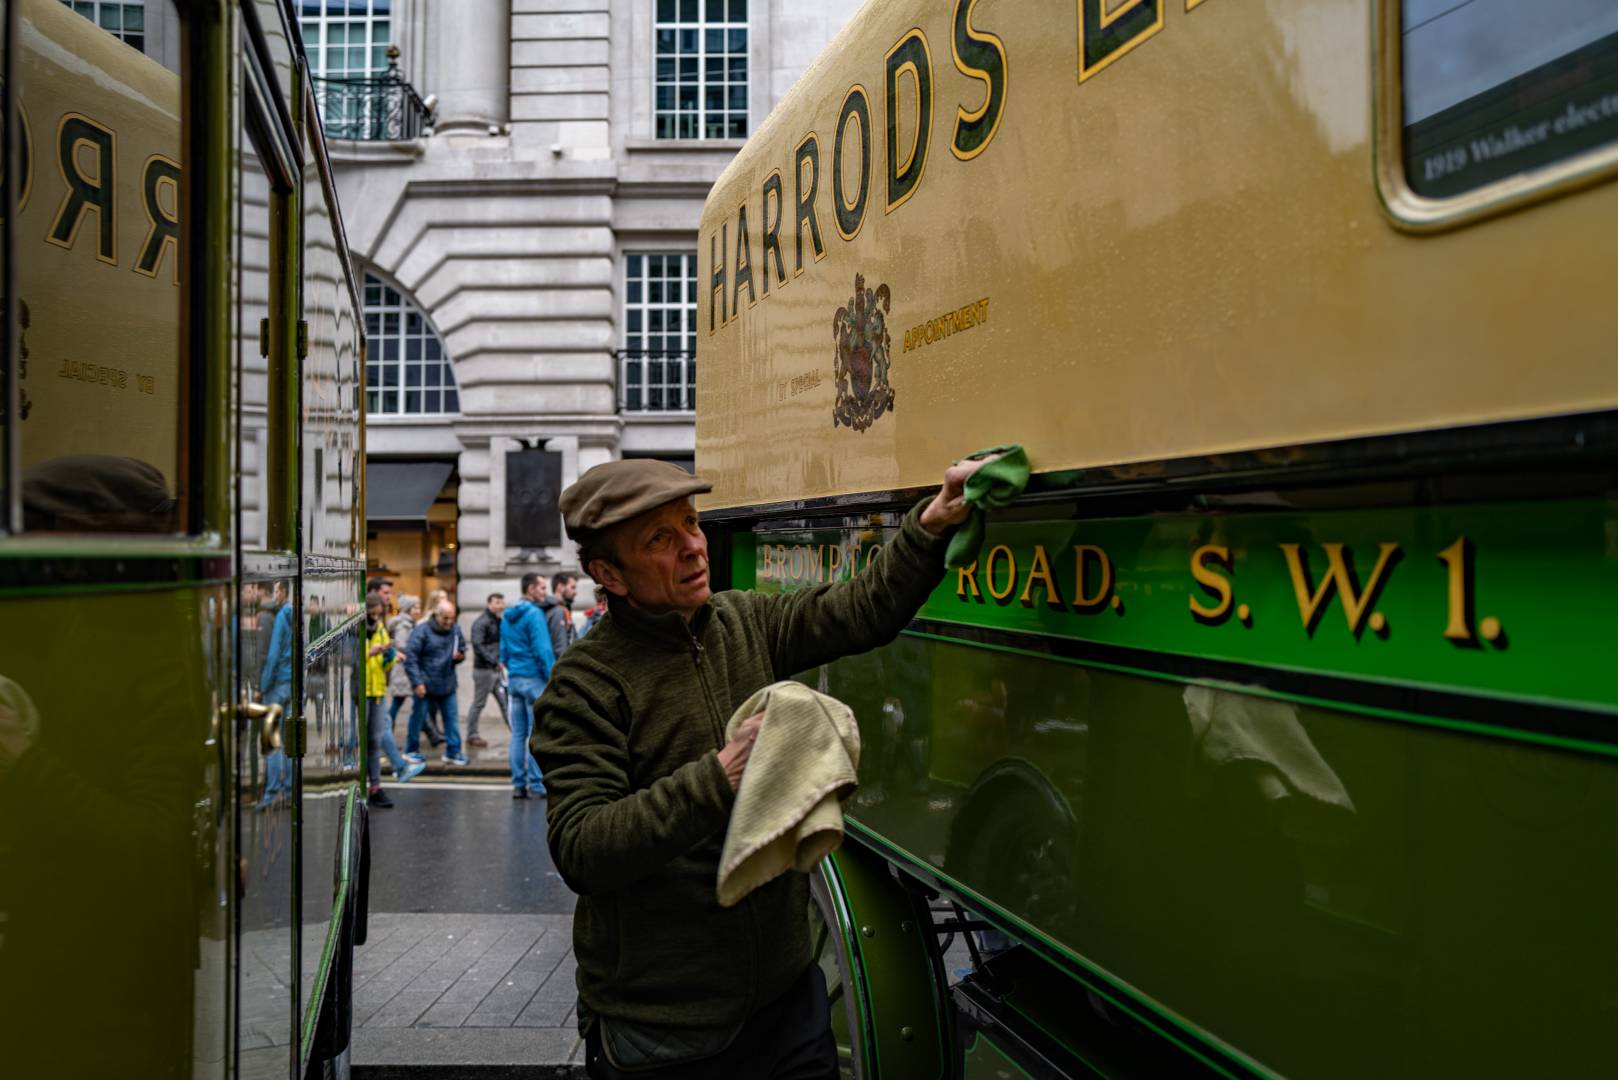 Pride in ownership and creating a good impression for Harrods of Knightsbridge